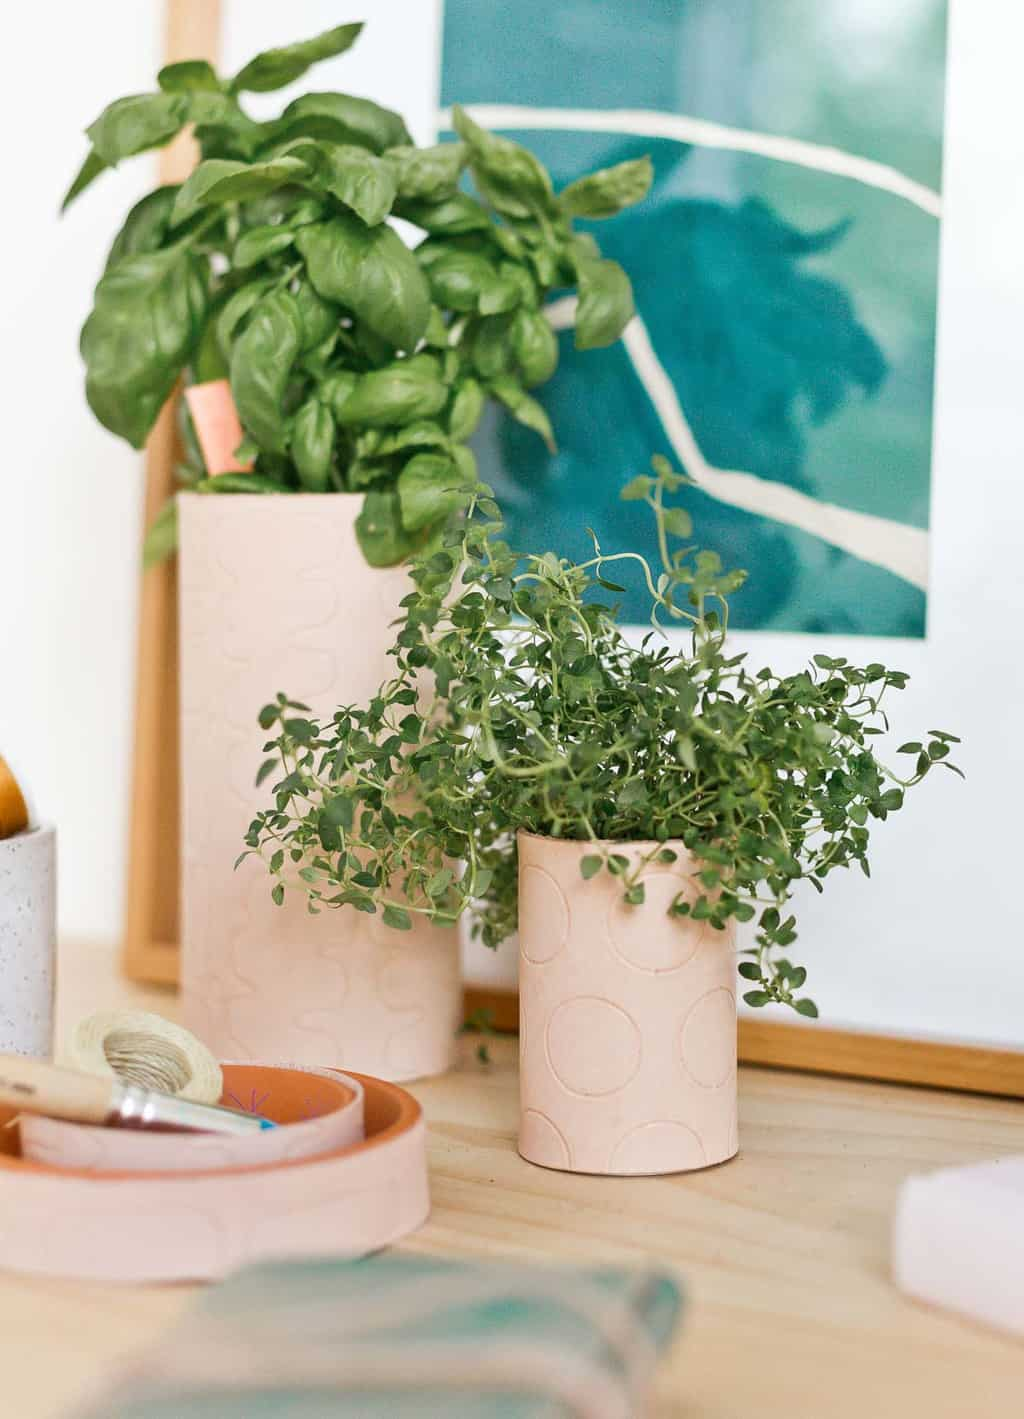 Leather planters with polka dot pattern embossed on them and herbs inside, on a wood desk